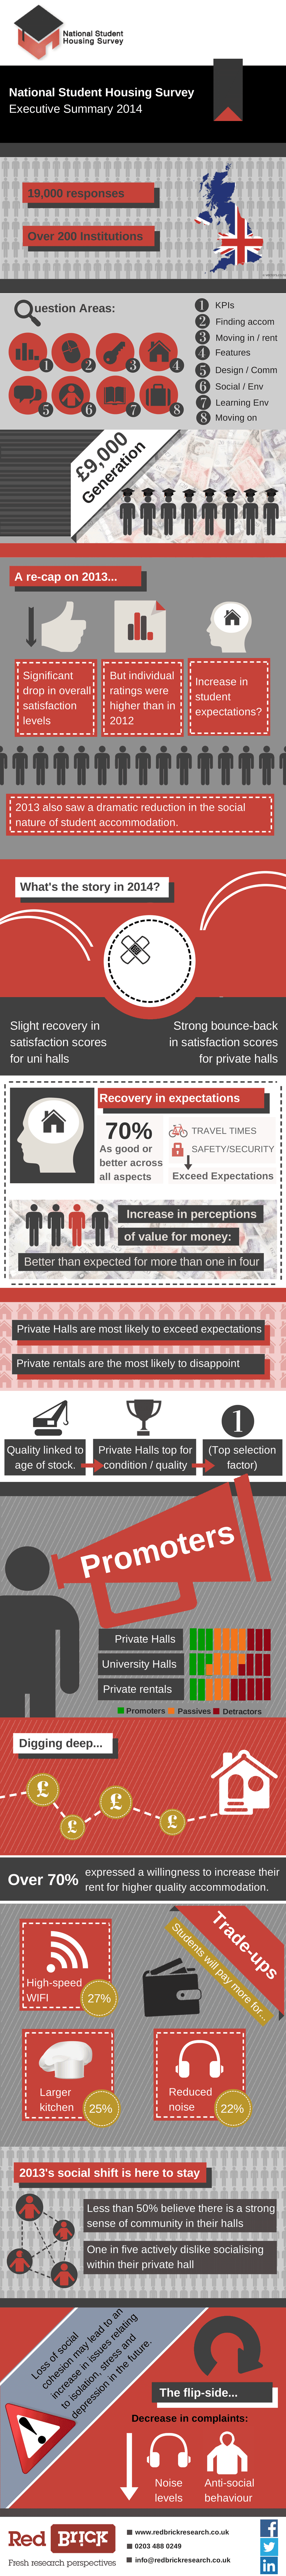 NSHS 2014 Infographic